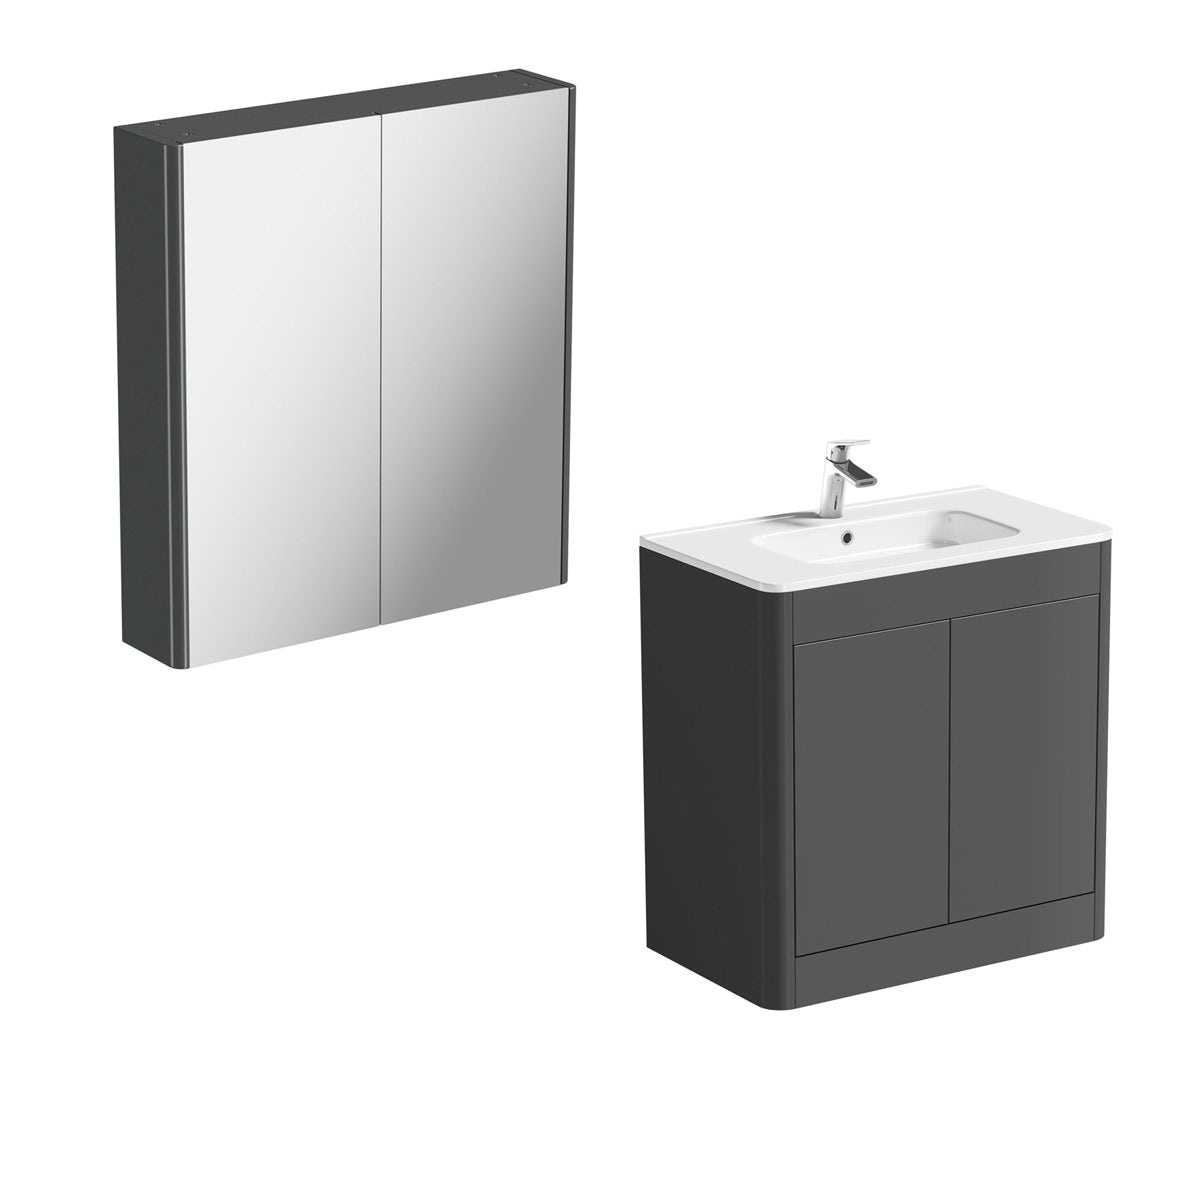 Mode Carter slate vanity unit 800mm and mirror